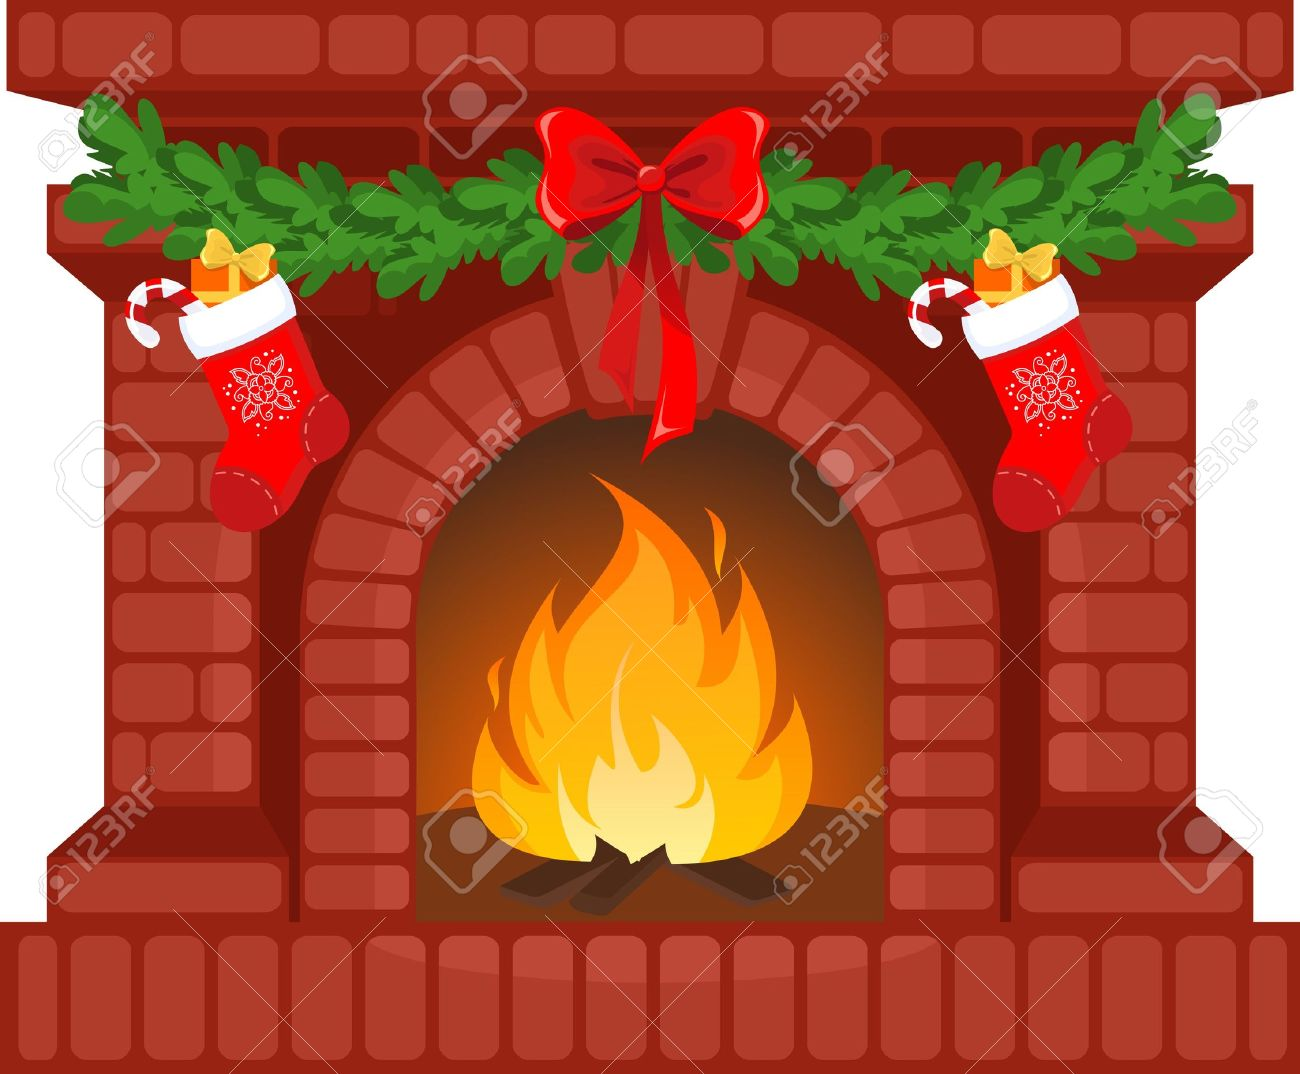 vector illustration of christmas fireplace with socks royalty free rh 123rf com Victorian Christmas Fireplace Christmas Fireplace Mantel